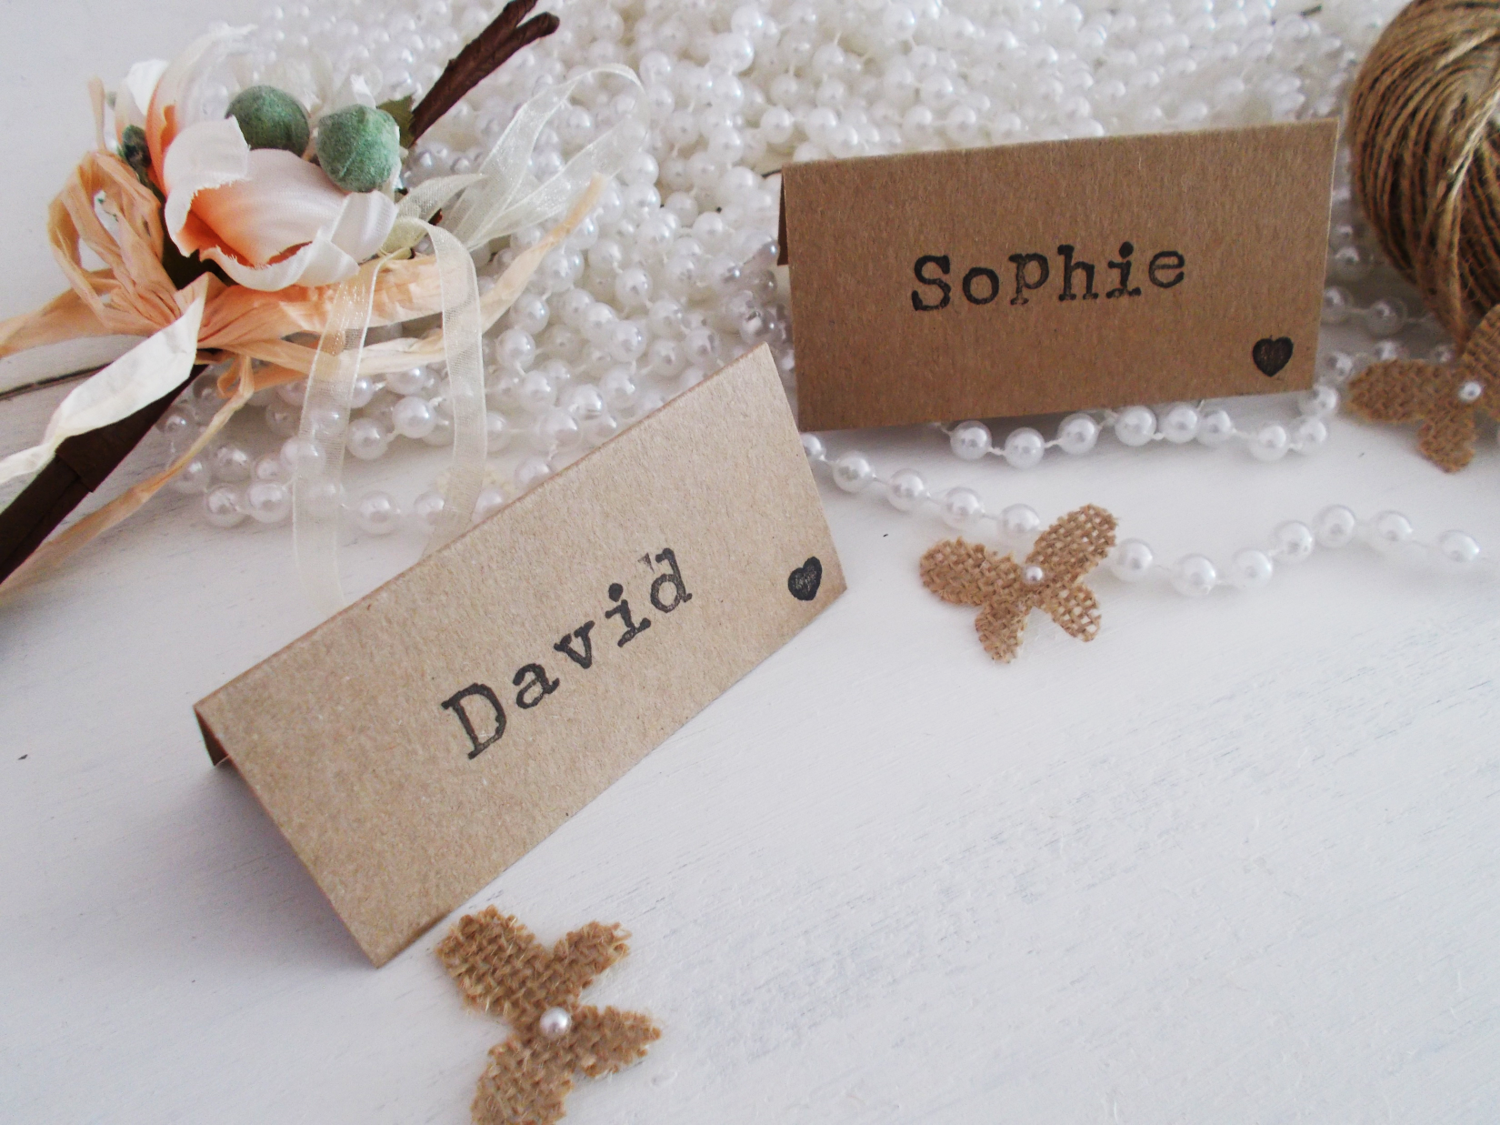 Rustic wedding place cards - rustic wedding - shabby chic wedding ...